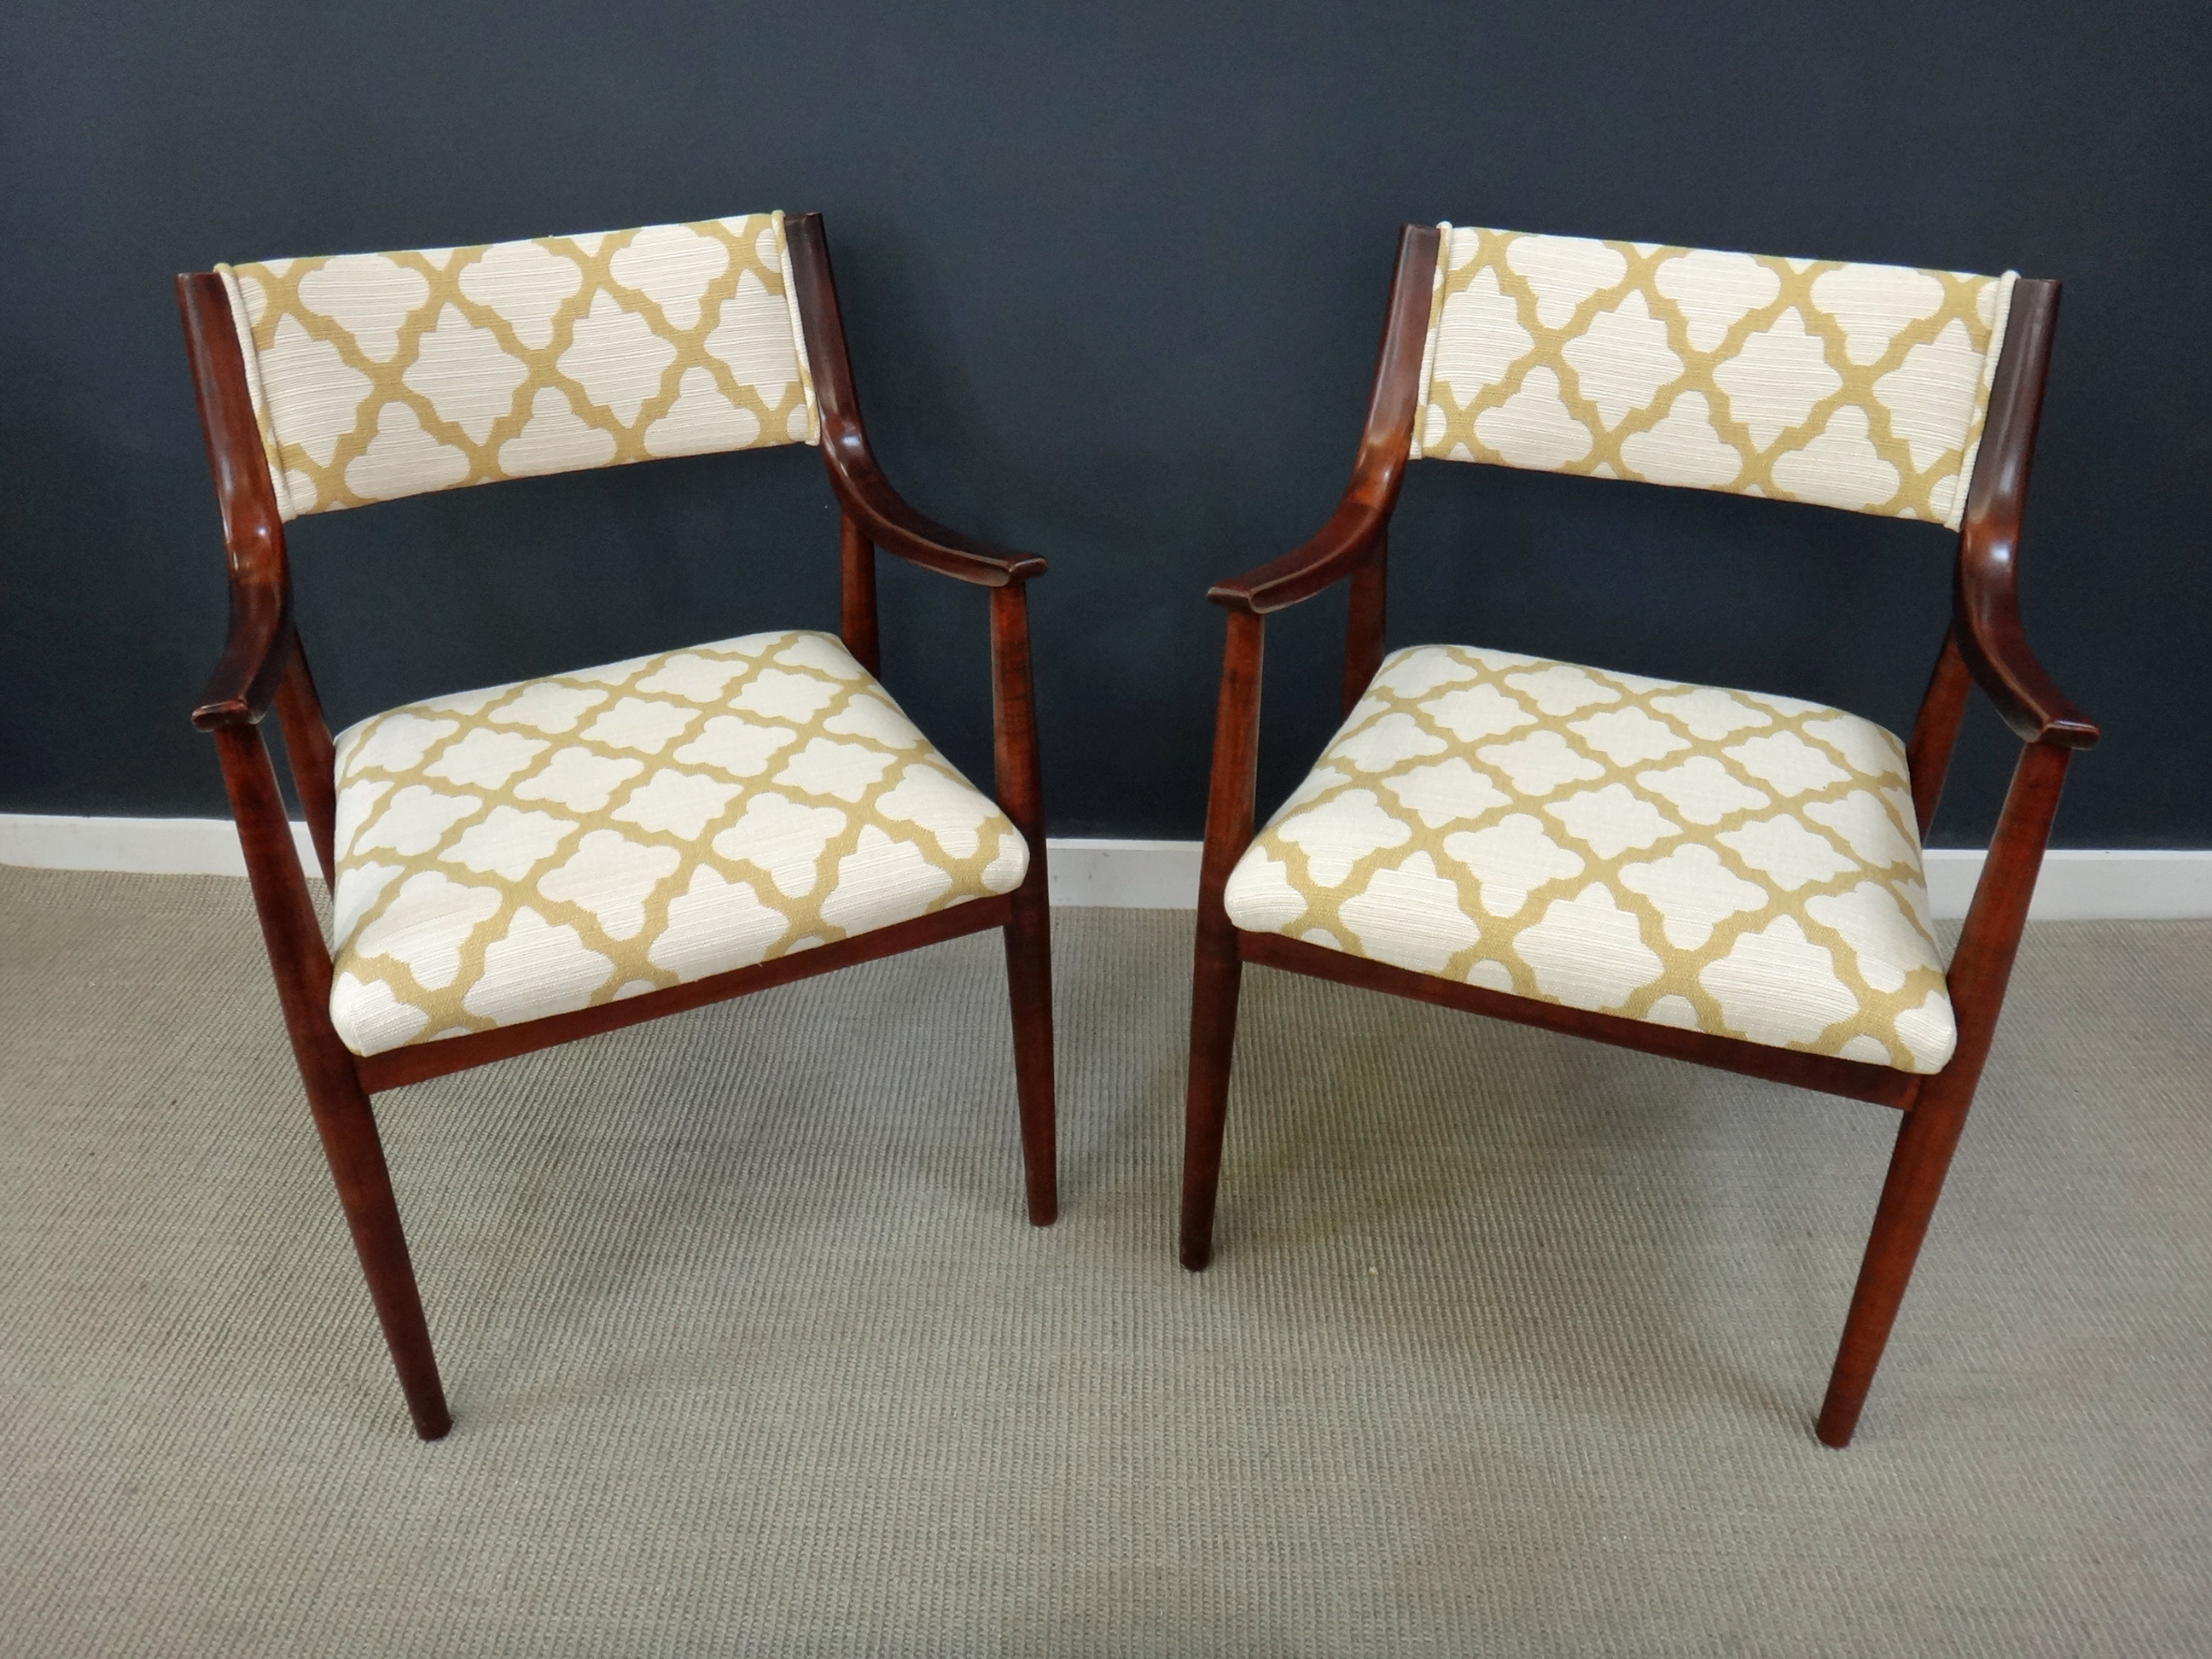 Accent Chairs Sold In Pairs.Pair Of Newly Upholstered Danish Modern Accent Chairs Retrocraft